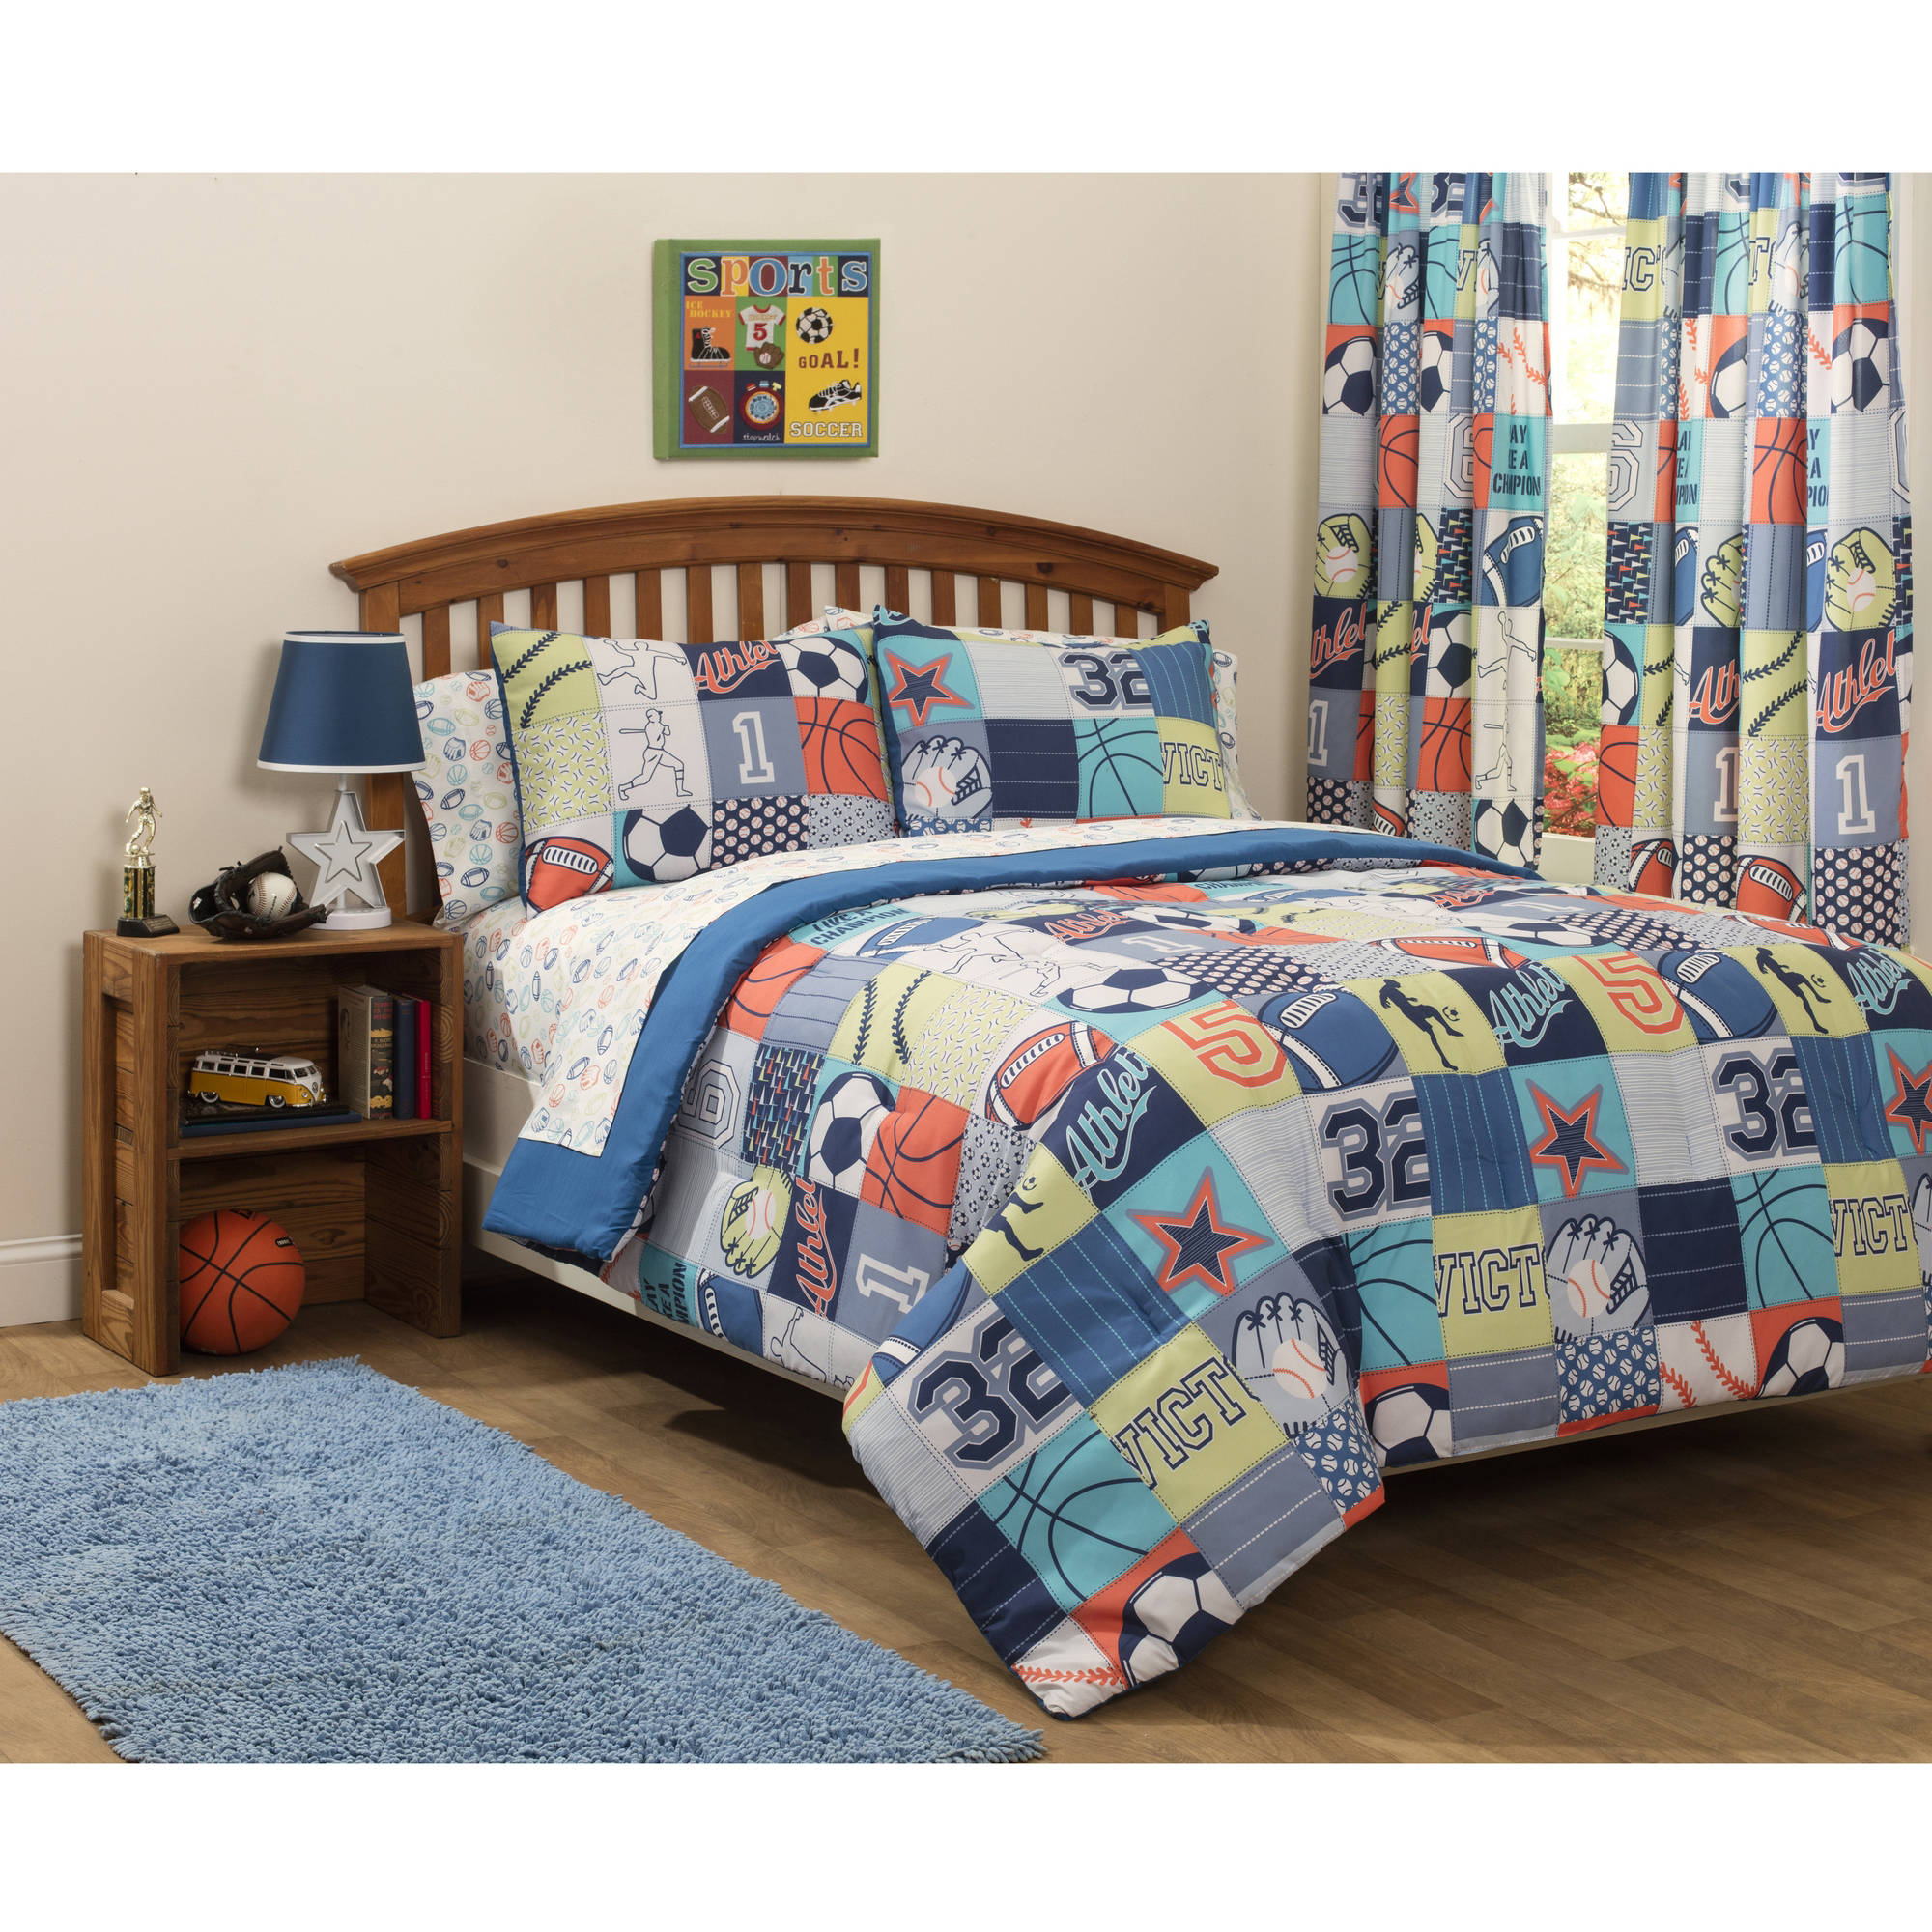 Mainstays Kids Play Like A Champion Bed-in-a-Bag Bedding Set